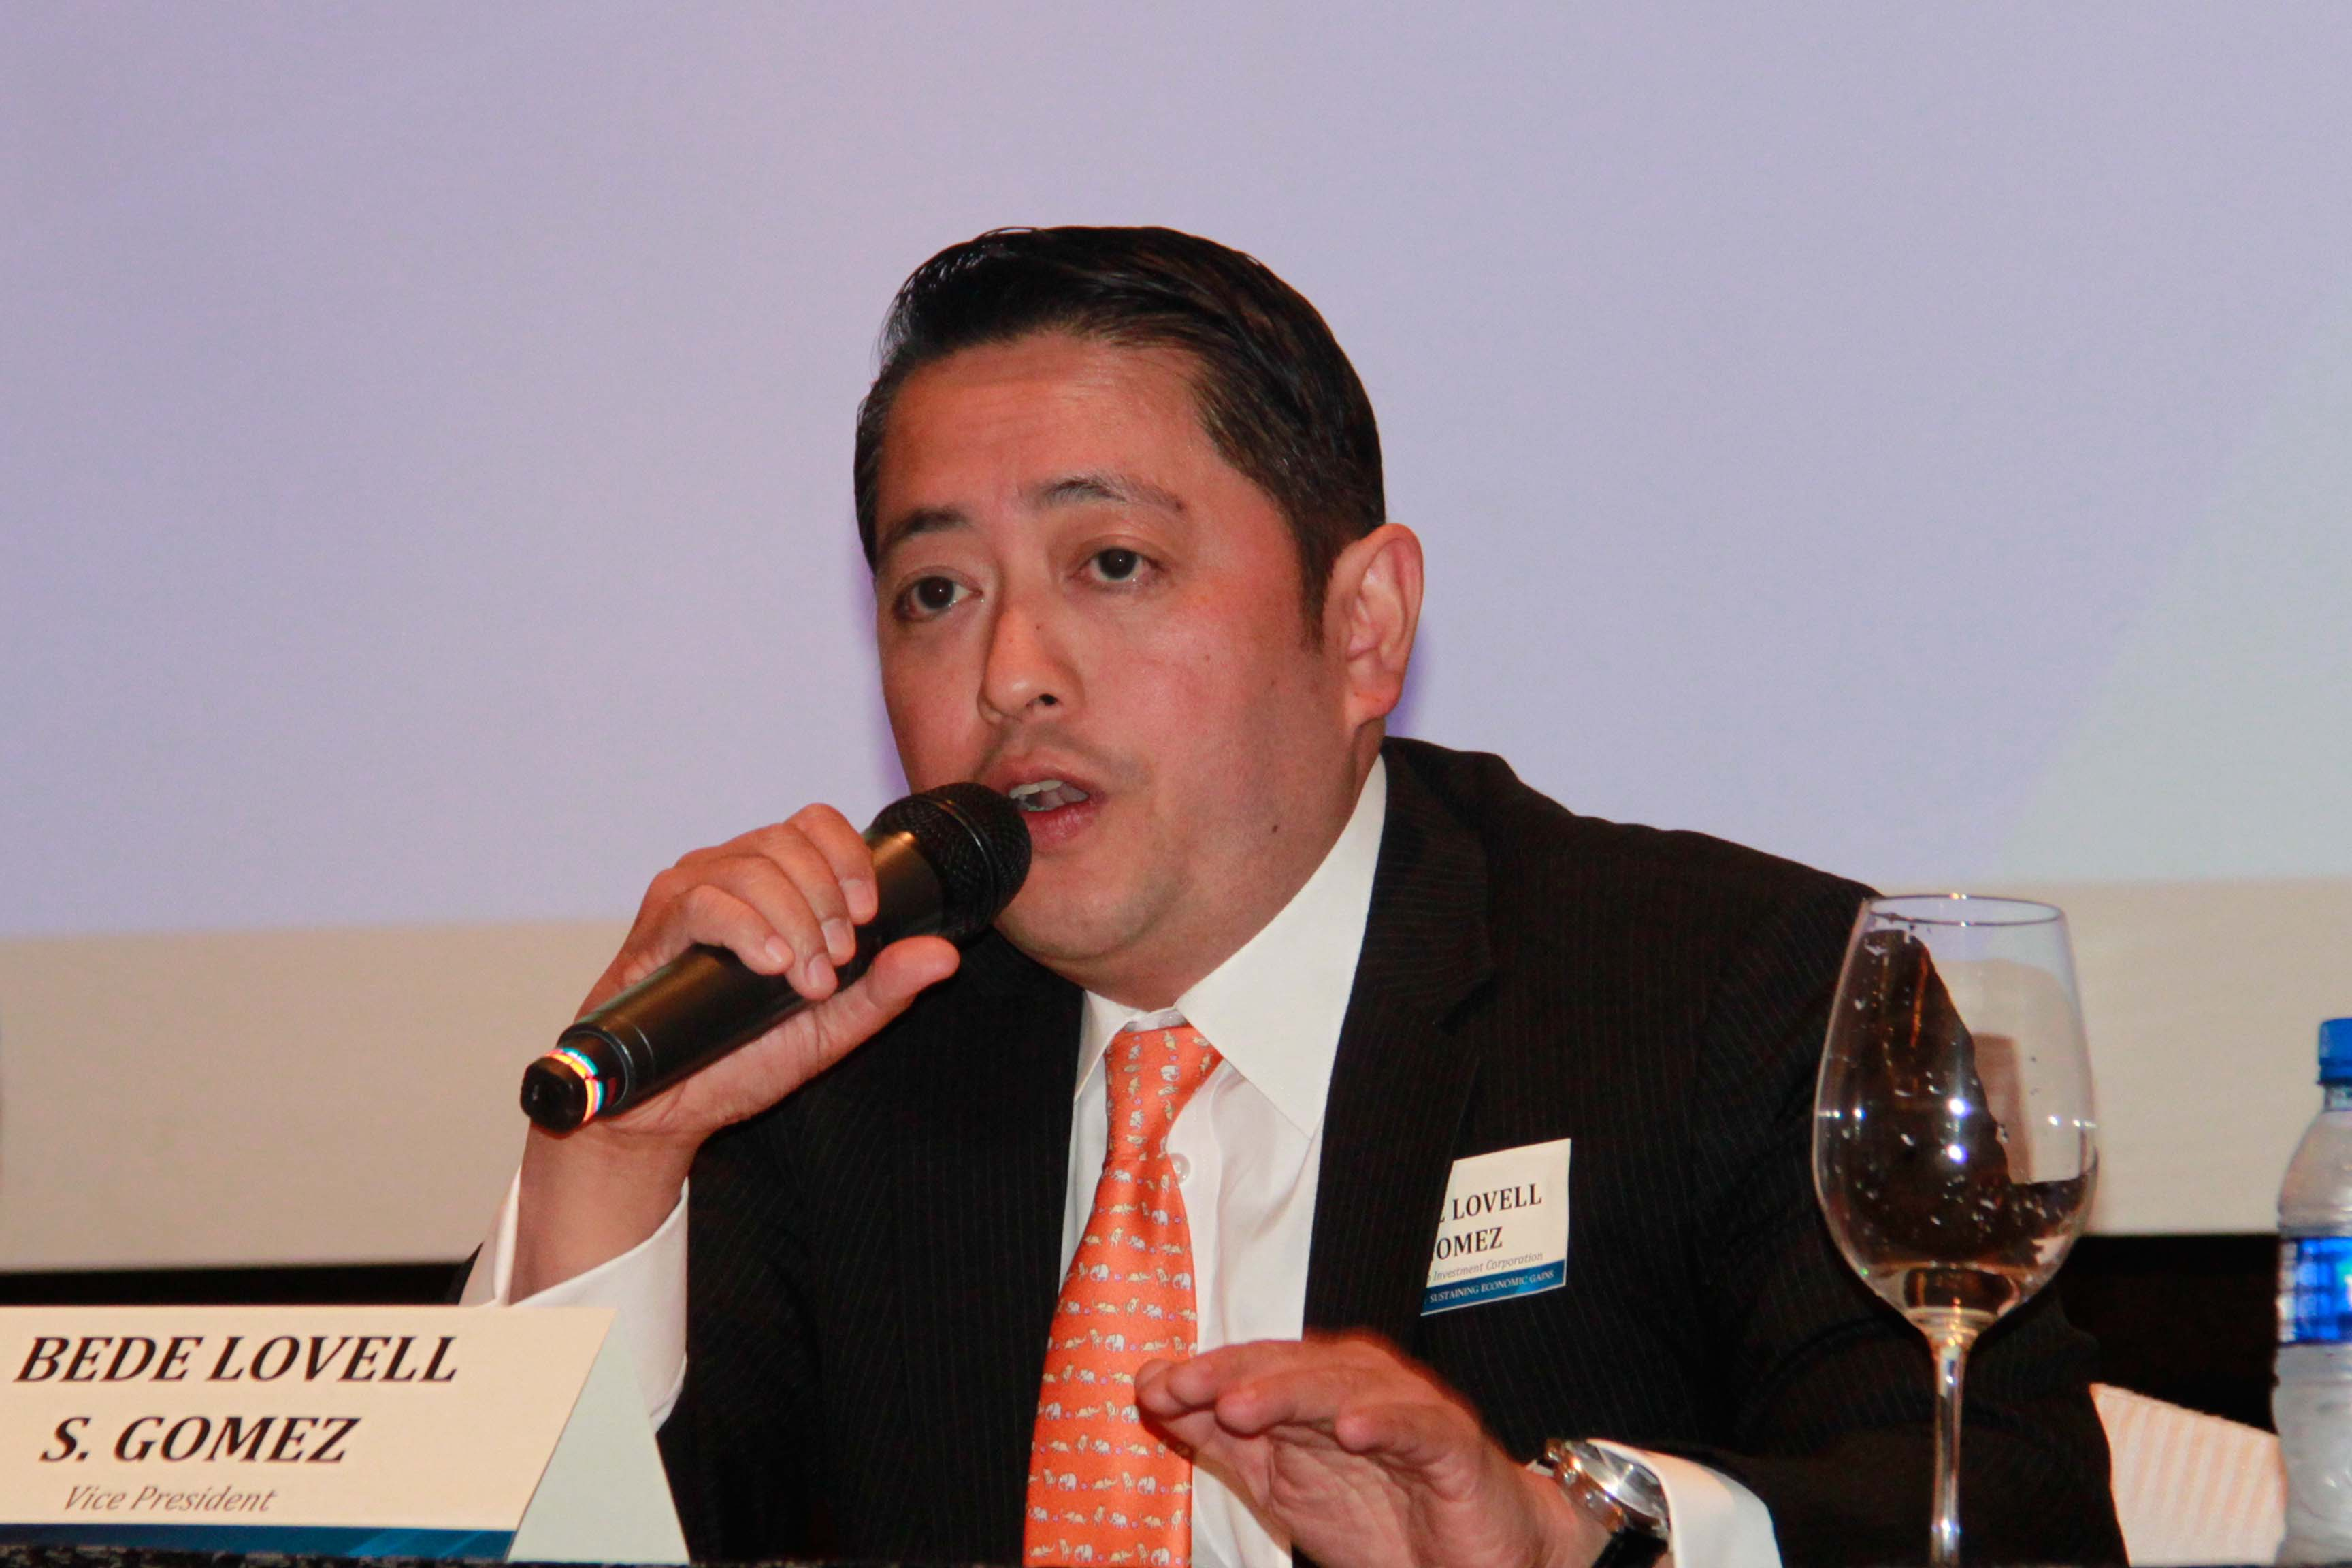 Bede Lovell Gomez, Investment Advisory & Trust Group Head, at the First Metro Annual Economic & Capital Markets Briefing